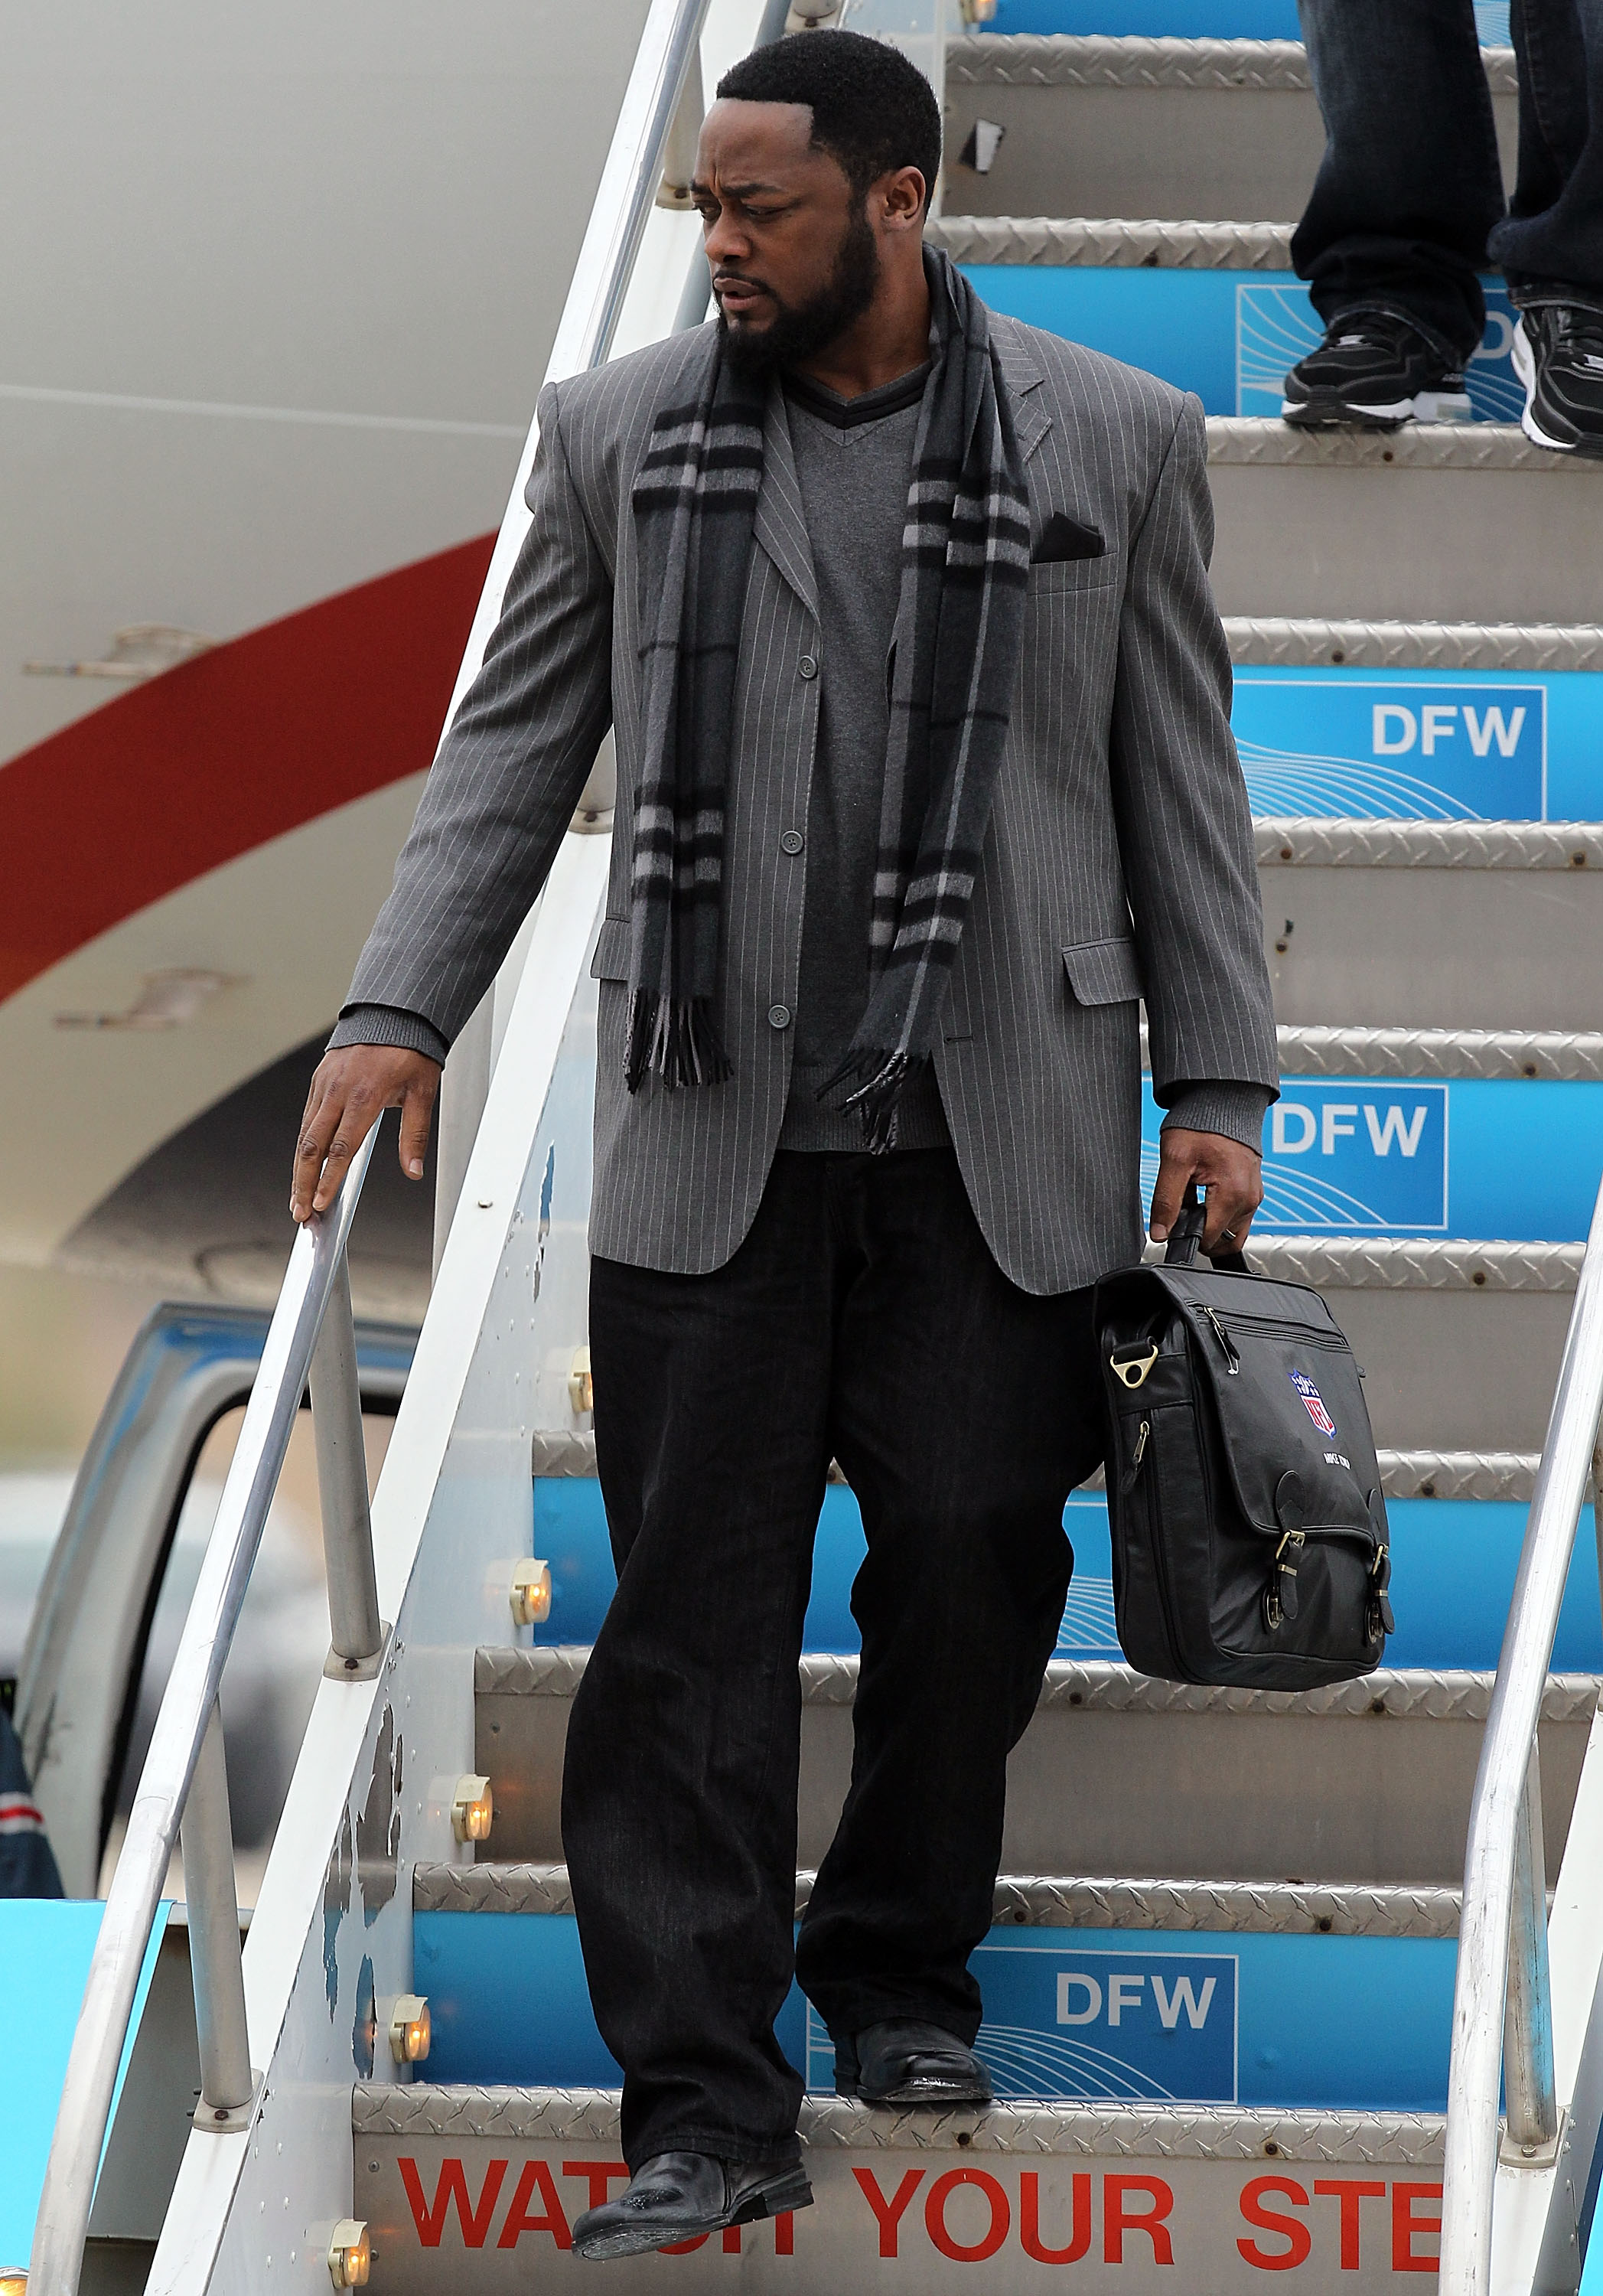 DALLAS, TX - JANUARY 31:  Head coach Mike Tomlin of the Pittsburgh Steelers walks off the airplane after arriving at Dallas Fort Worth International Airport on January 31, 2011 in Dallas, Texas.  The Pittsburgh Steelers will play the Green Bay Packers in